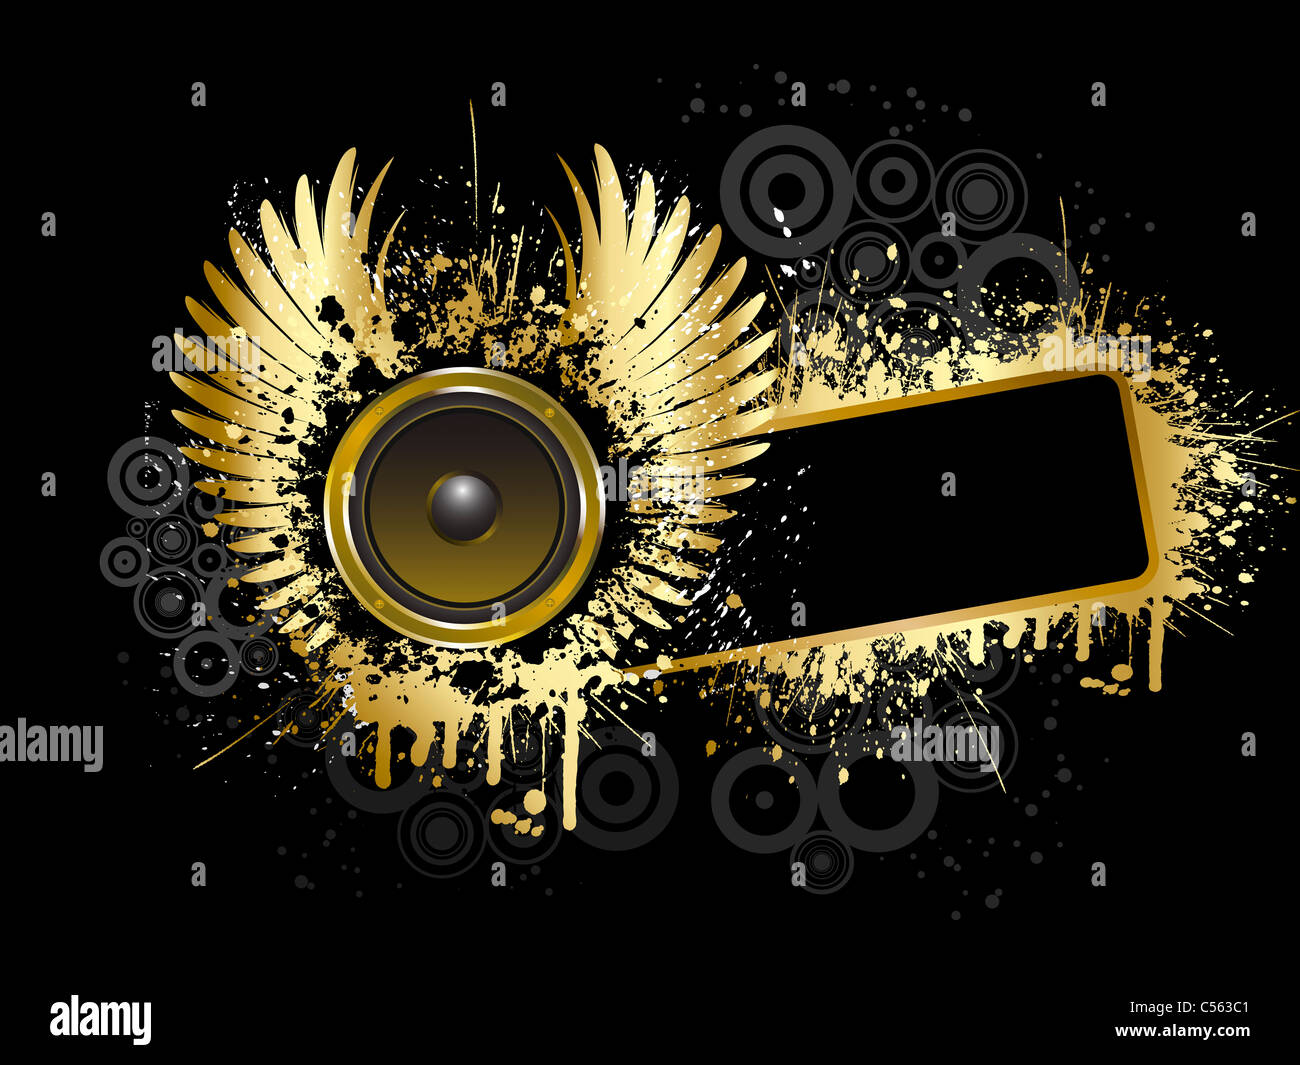 grunge music background in gold and black stock photo